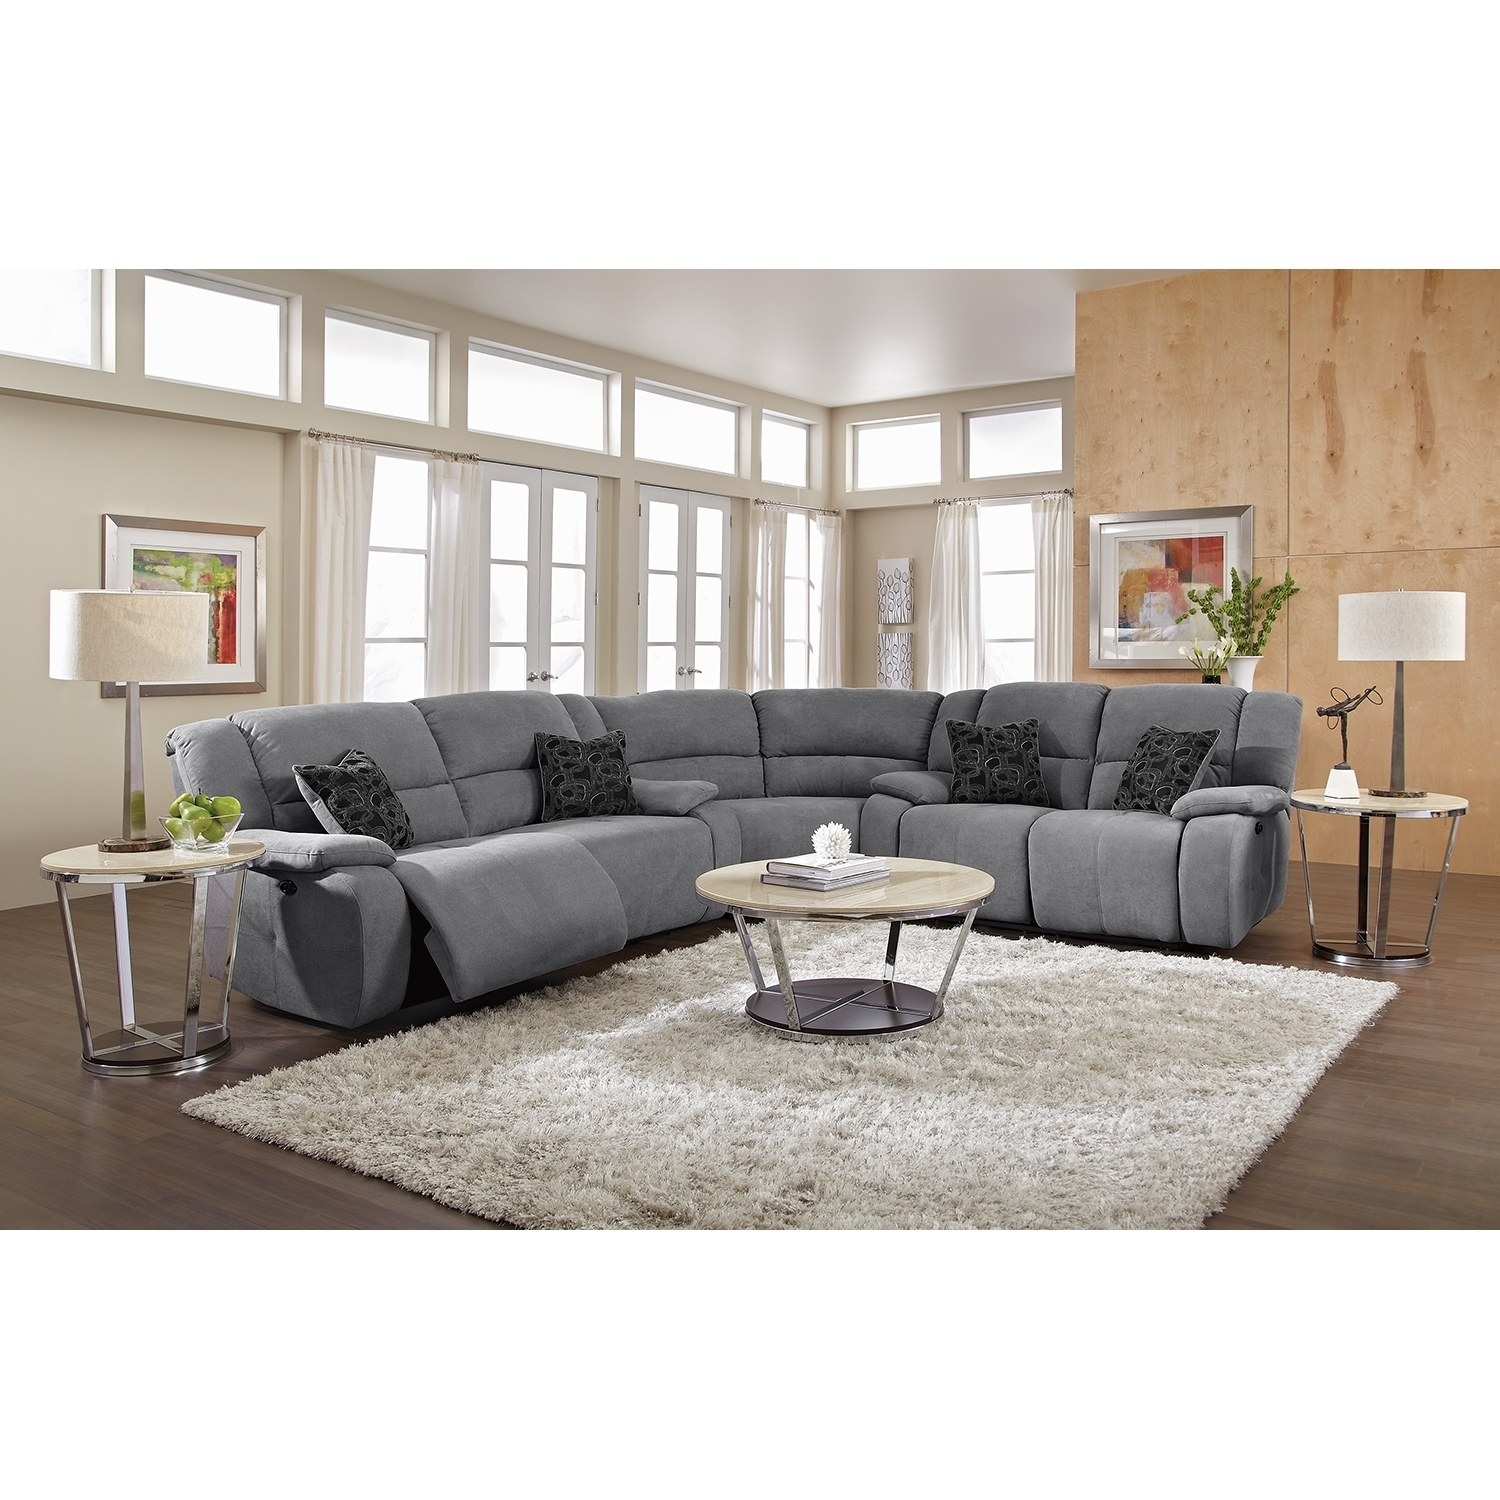 Best And Newest Modern Reclining Sectional Oversized Sectionals With Chaise Blue Pertaining To Reclining Sectionals With Chaise (View 2 of 15)